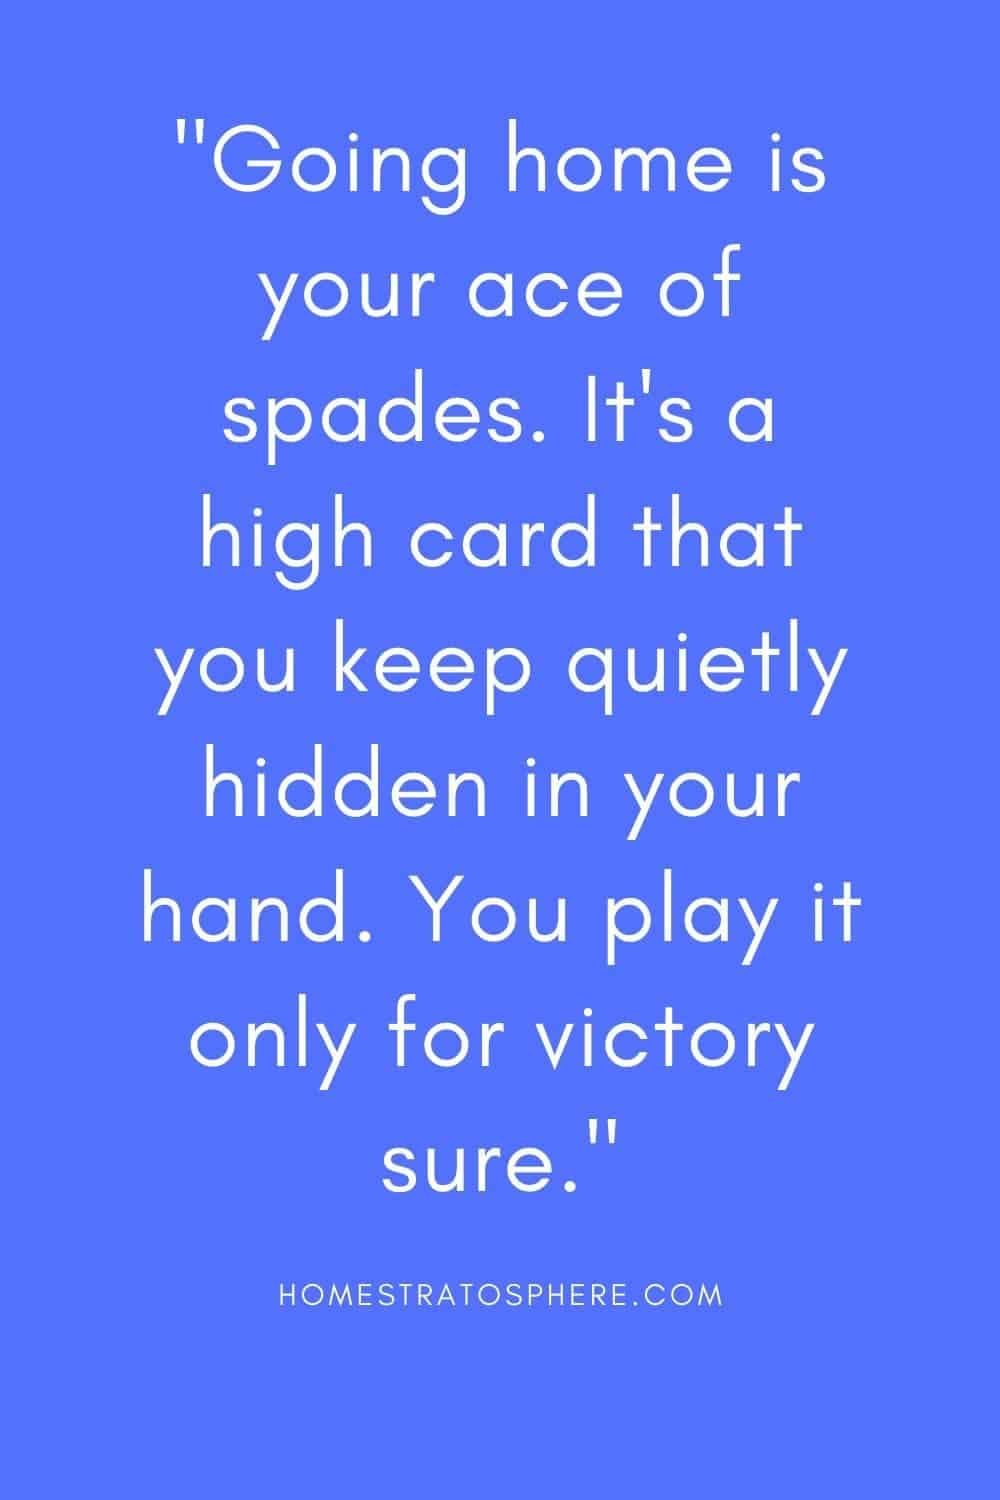 """""""Going home is your ace of spades. It's a high card that you keep quietly hidden in your hand. You play it only for victory sure."""""""